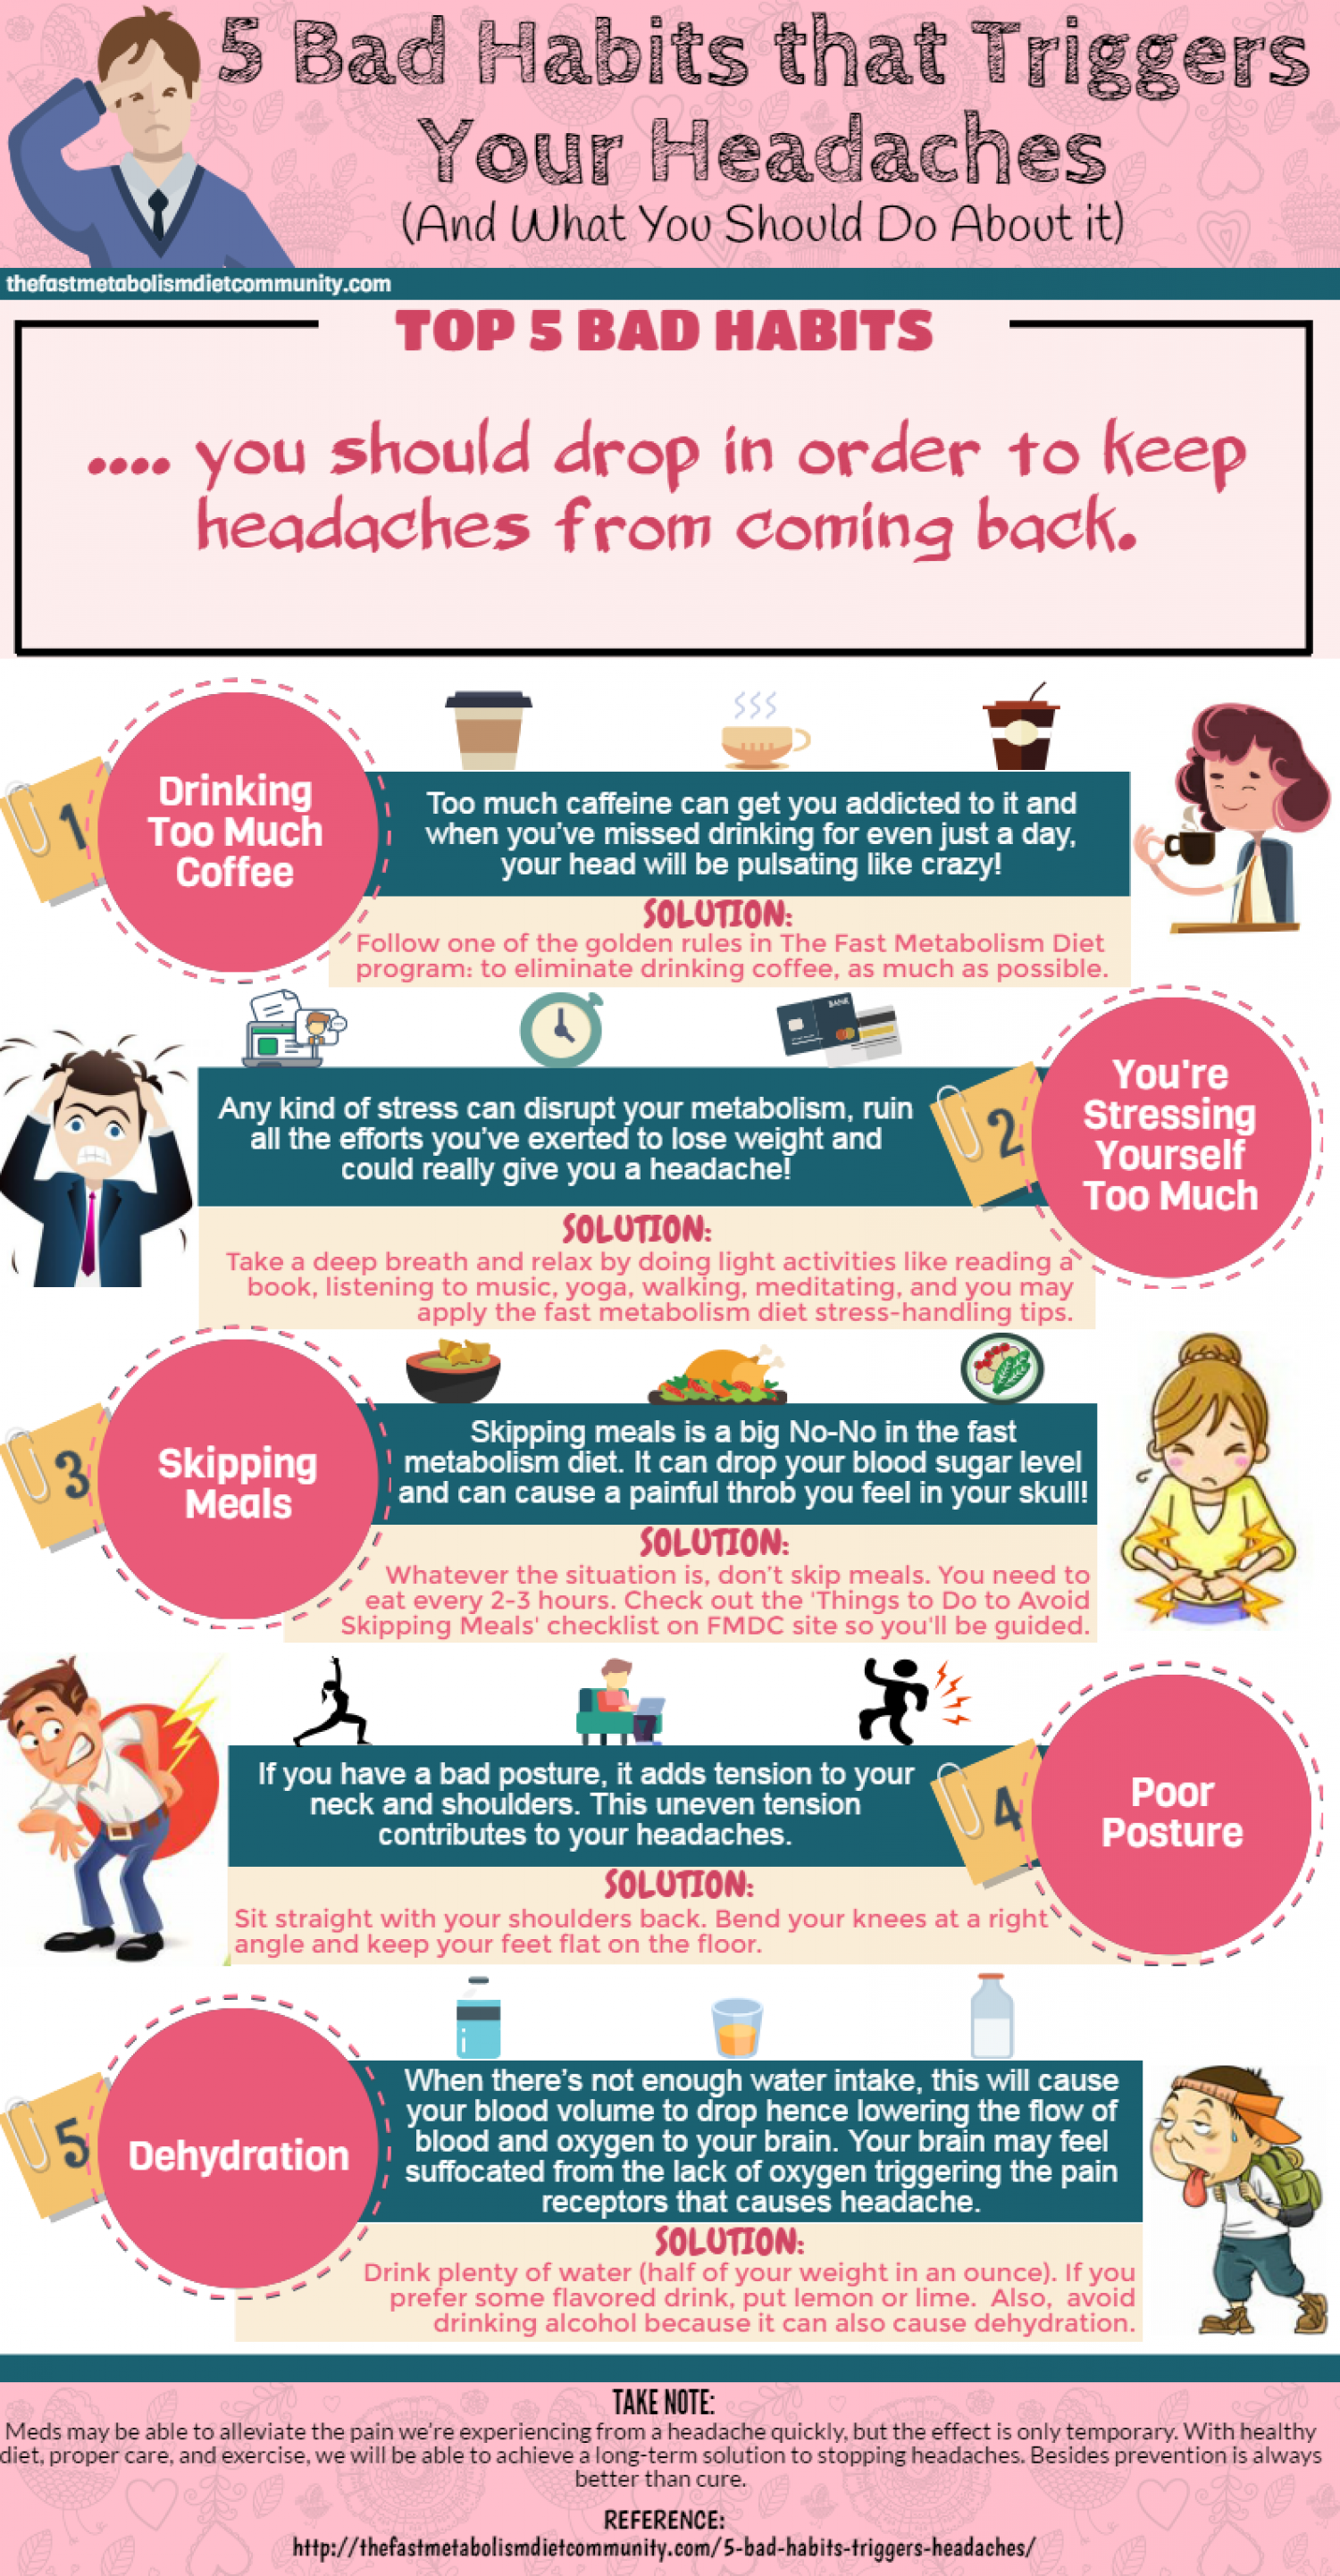 5 Bad Habits that Triggers Your Headaches (And What You Should Do About it) Infographic